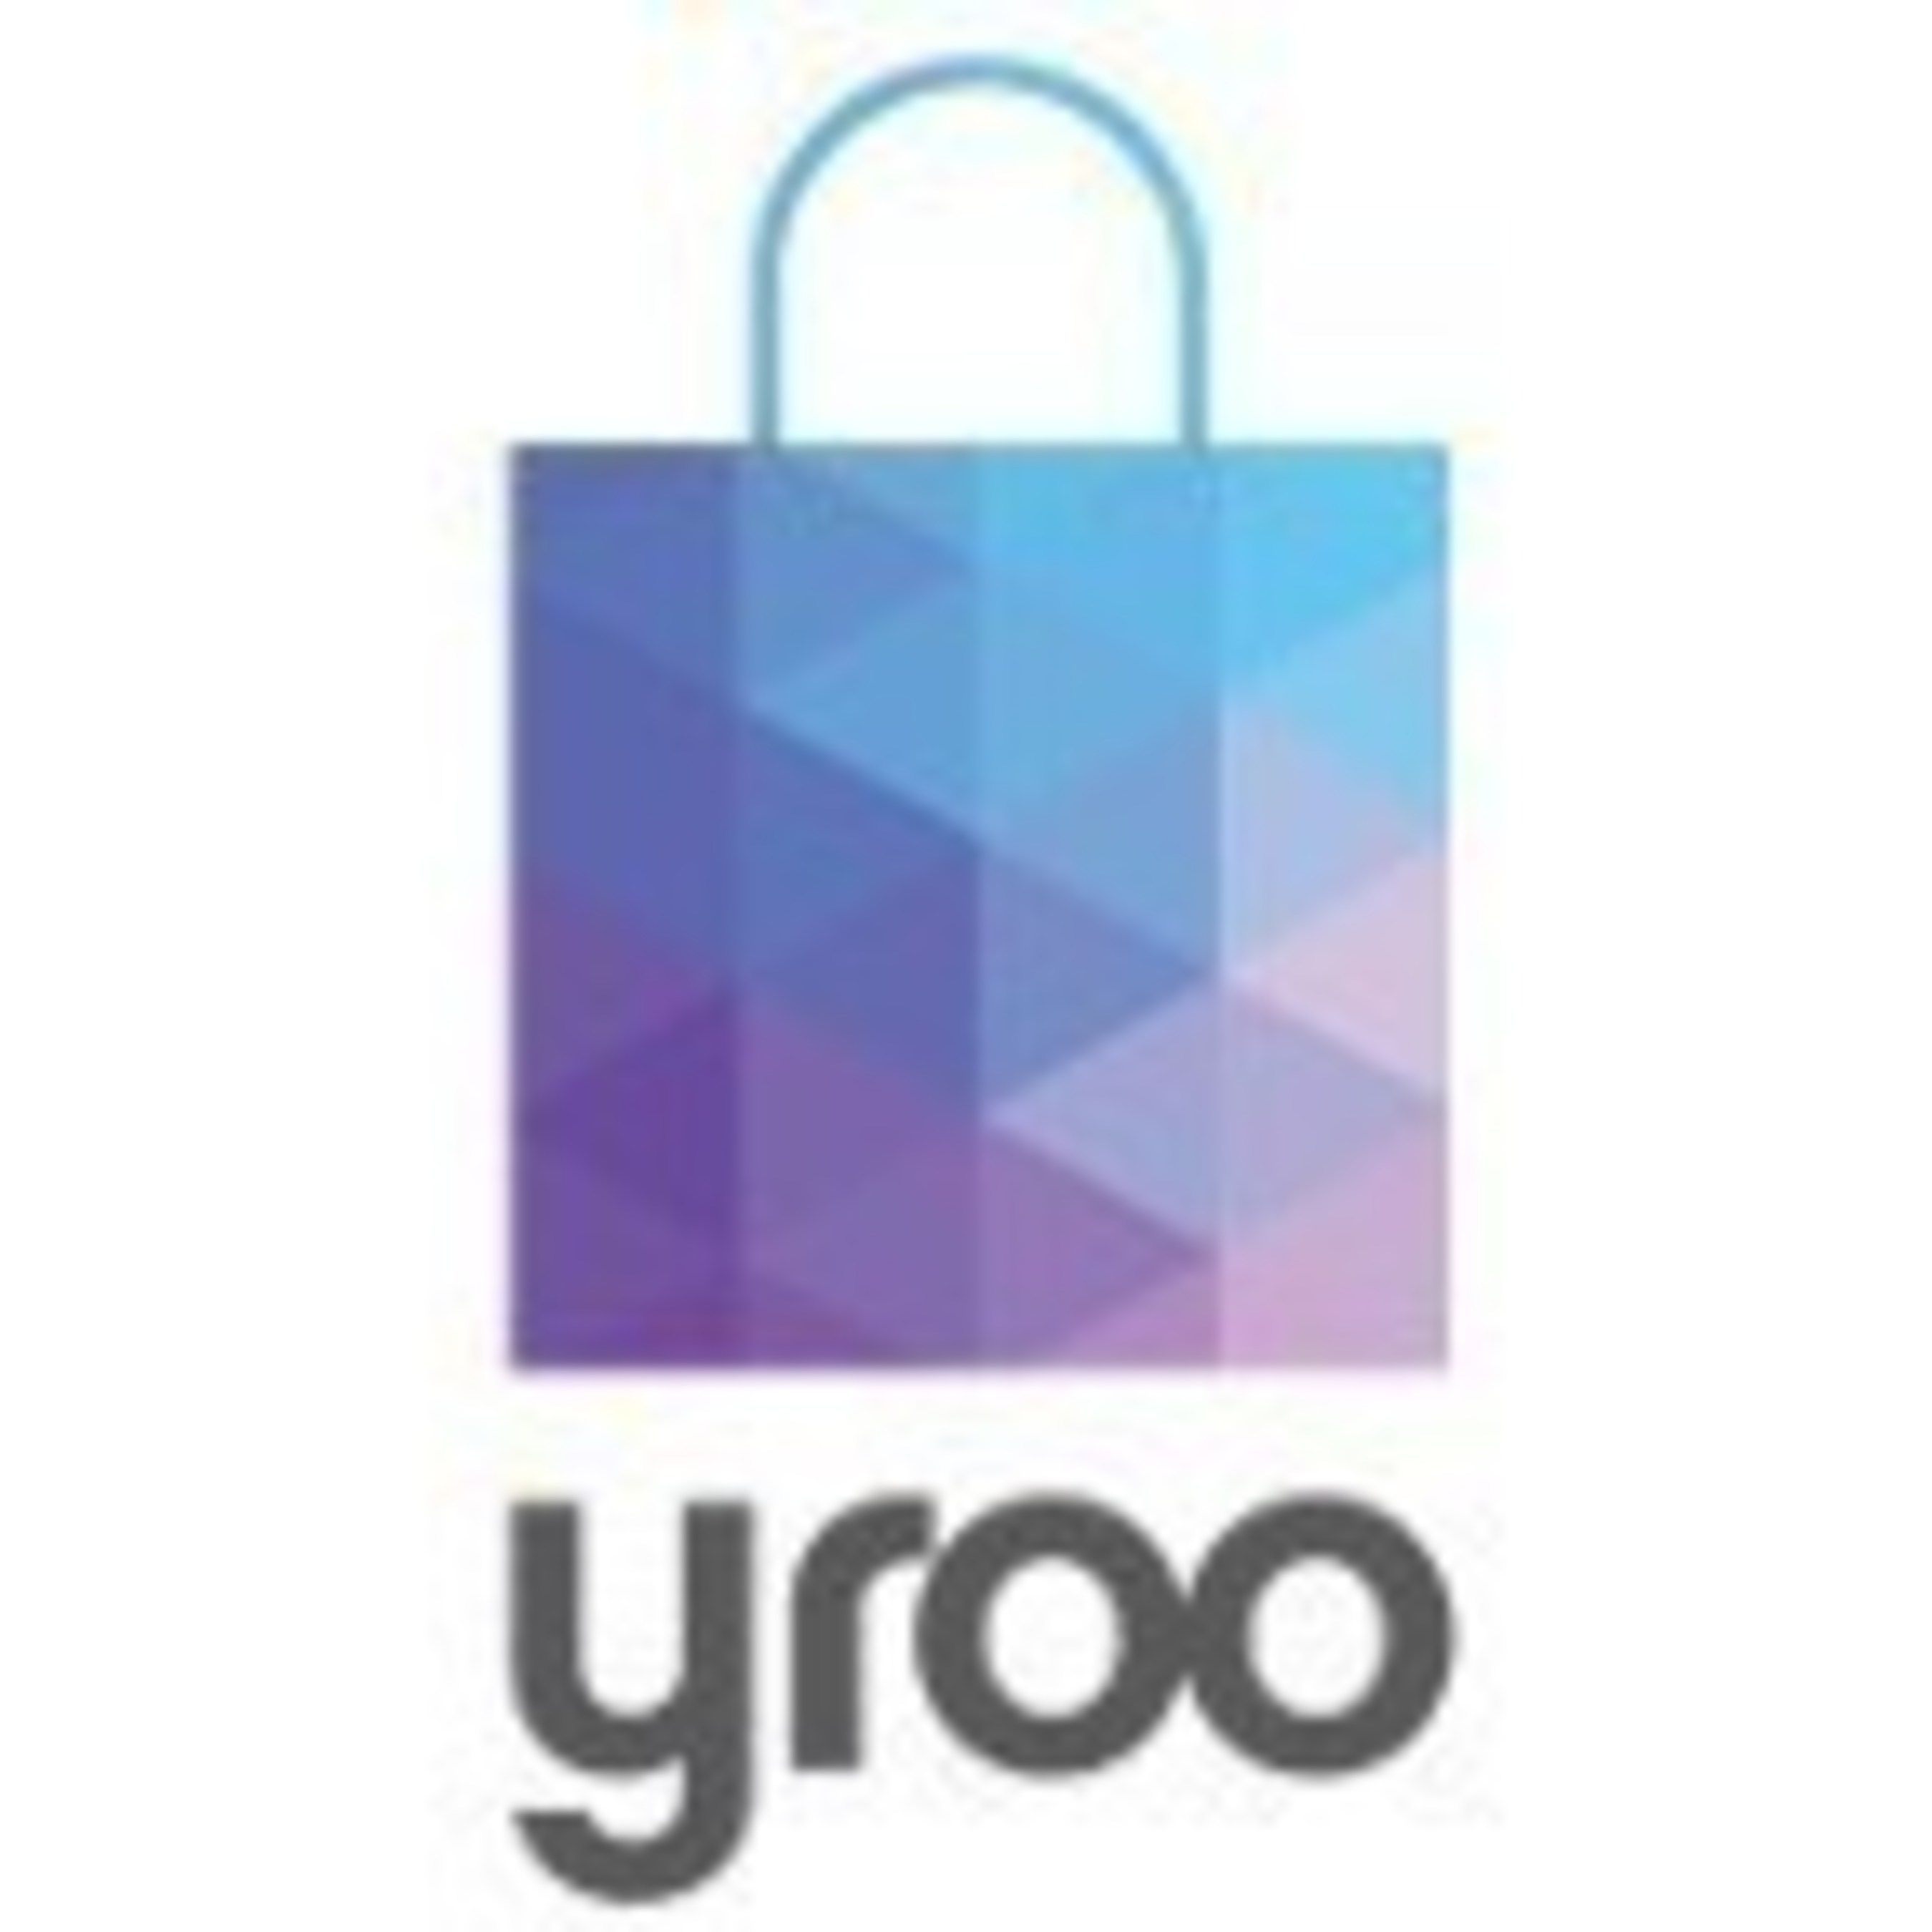 Yroo Surpasses 3 Million Users and Launches Key Strategic Markets on Three Continents